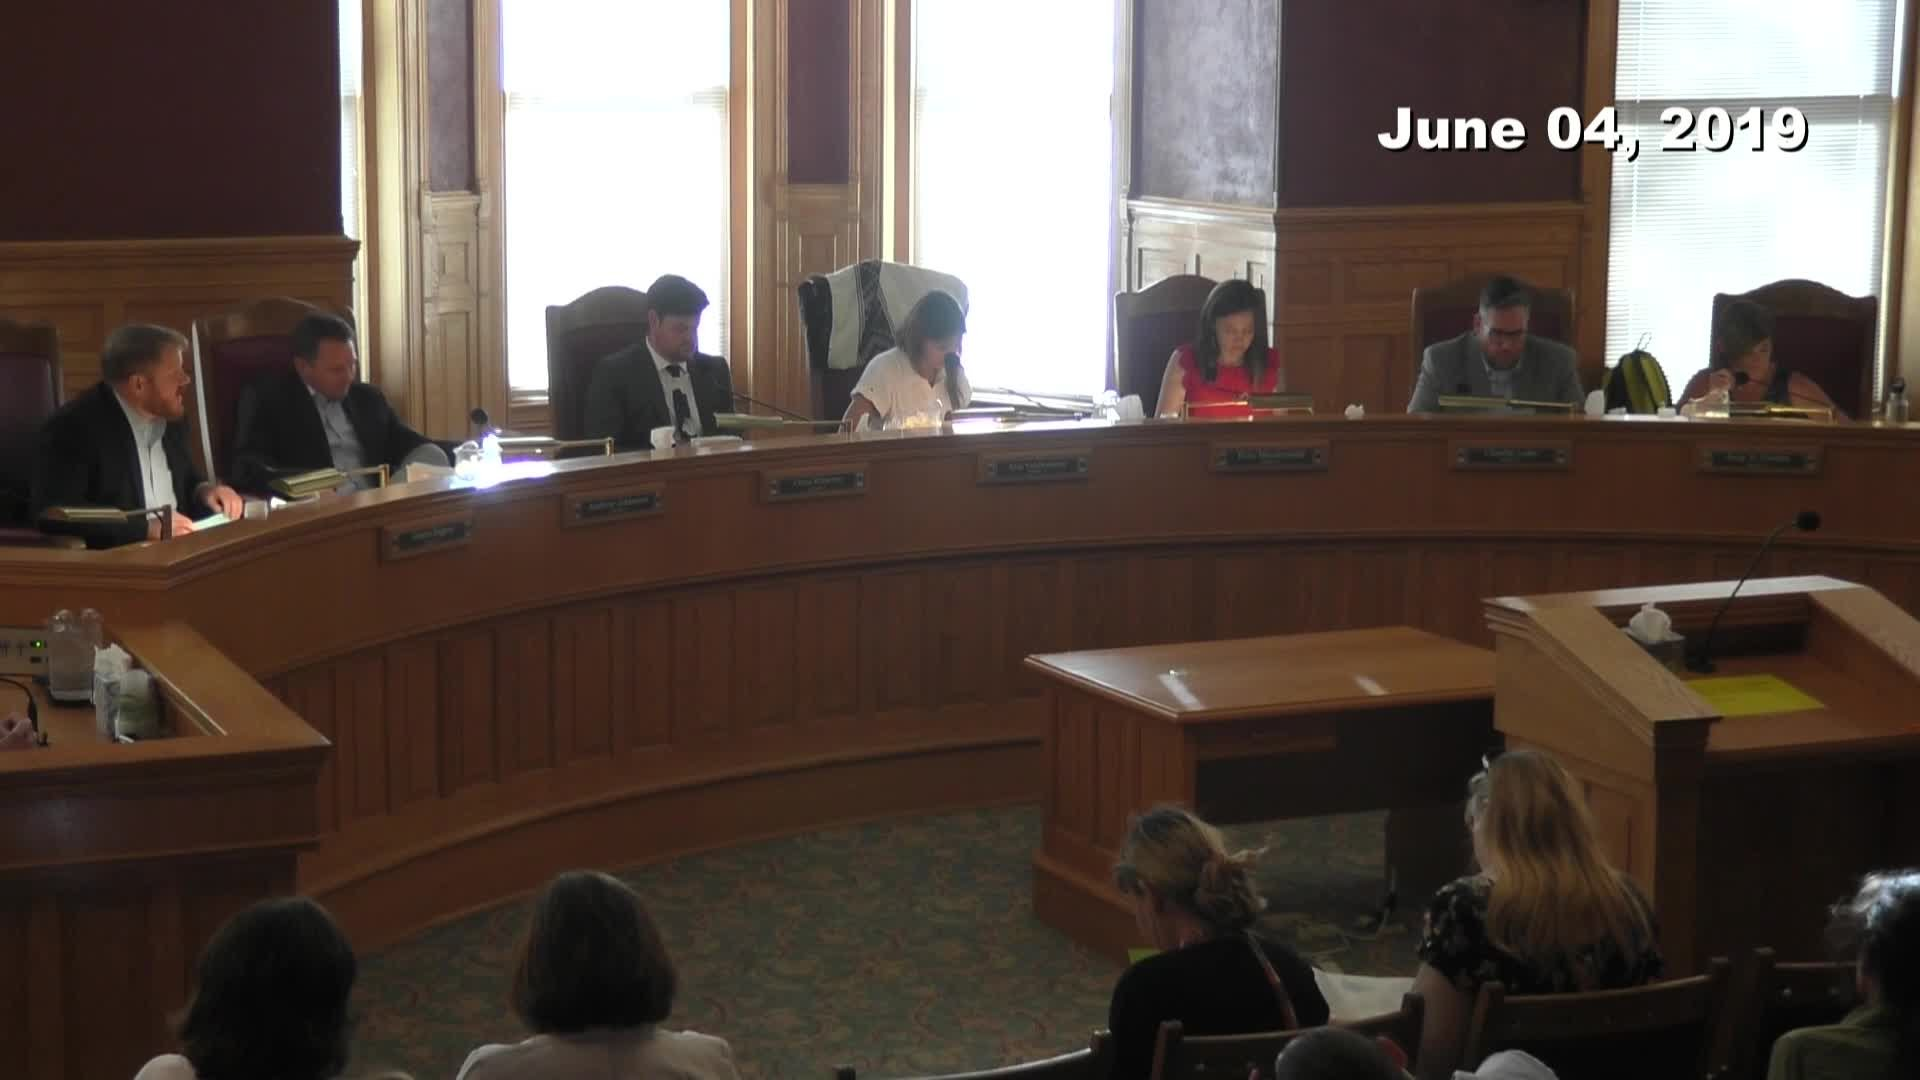 City Council Formal Meeting - 06/04/2019